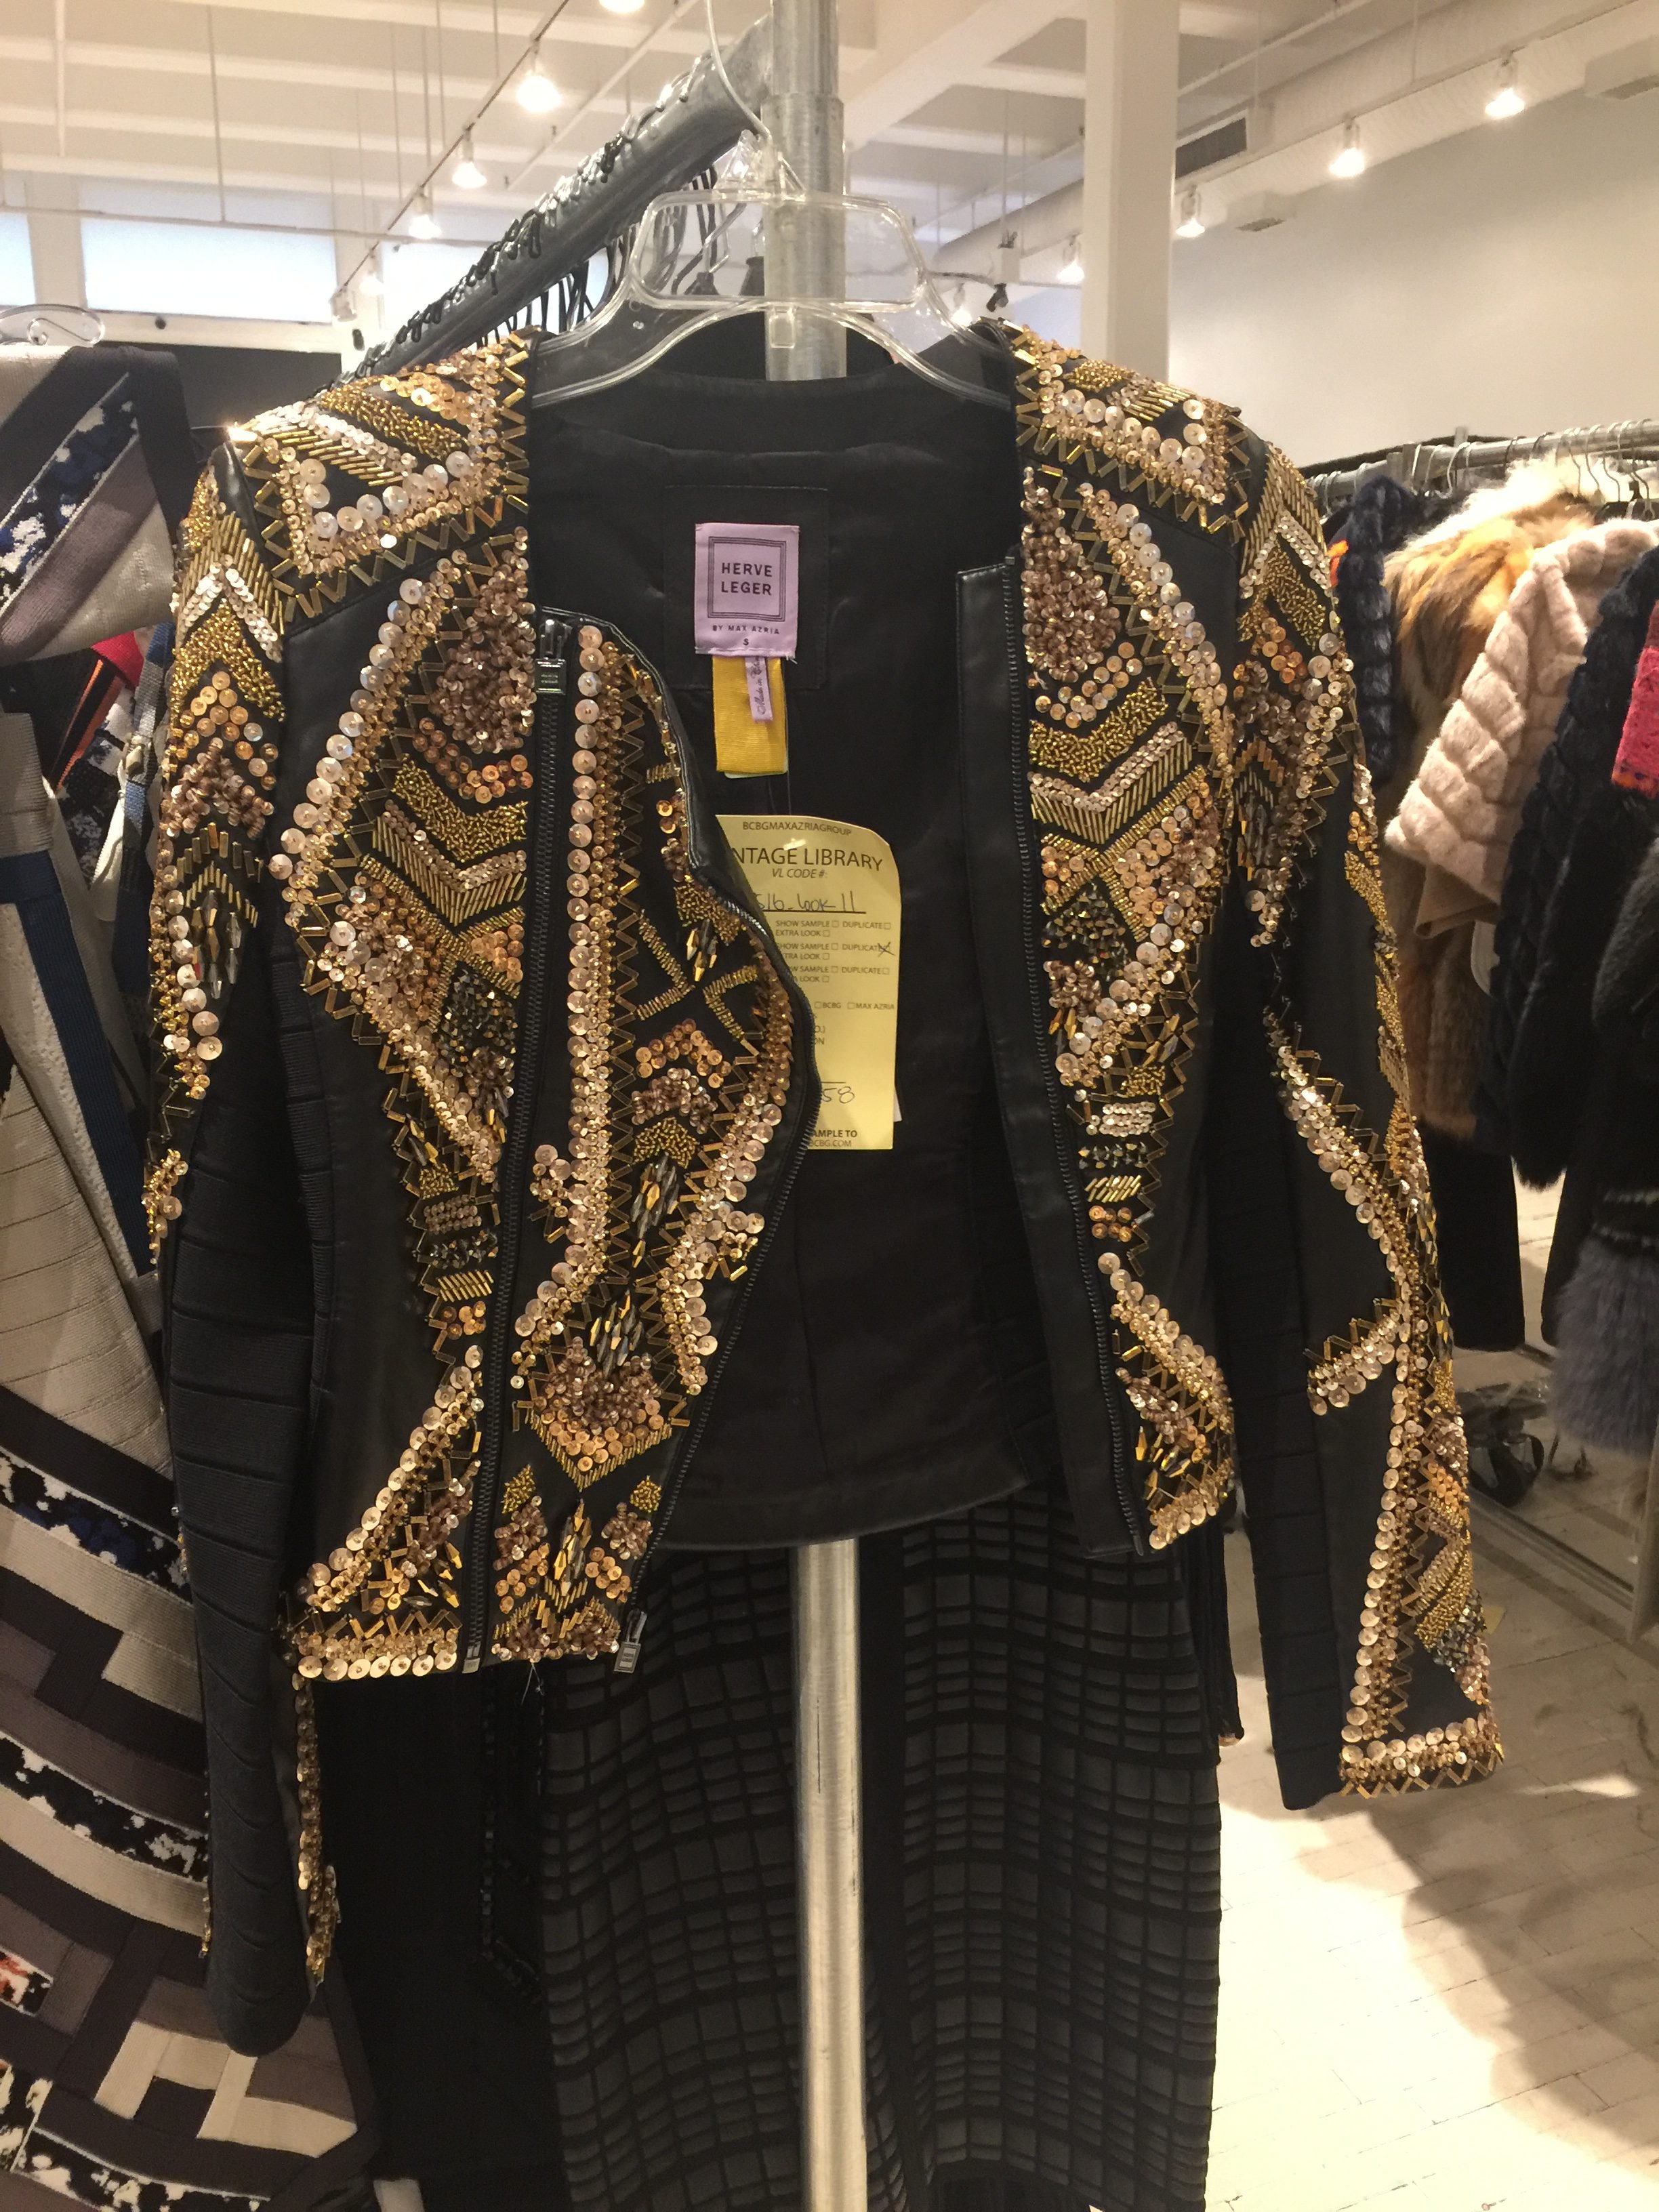 Herve Leger sample sale jacket